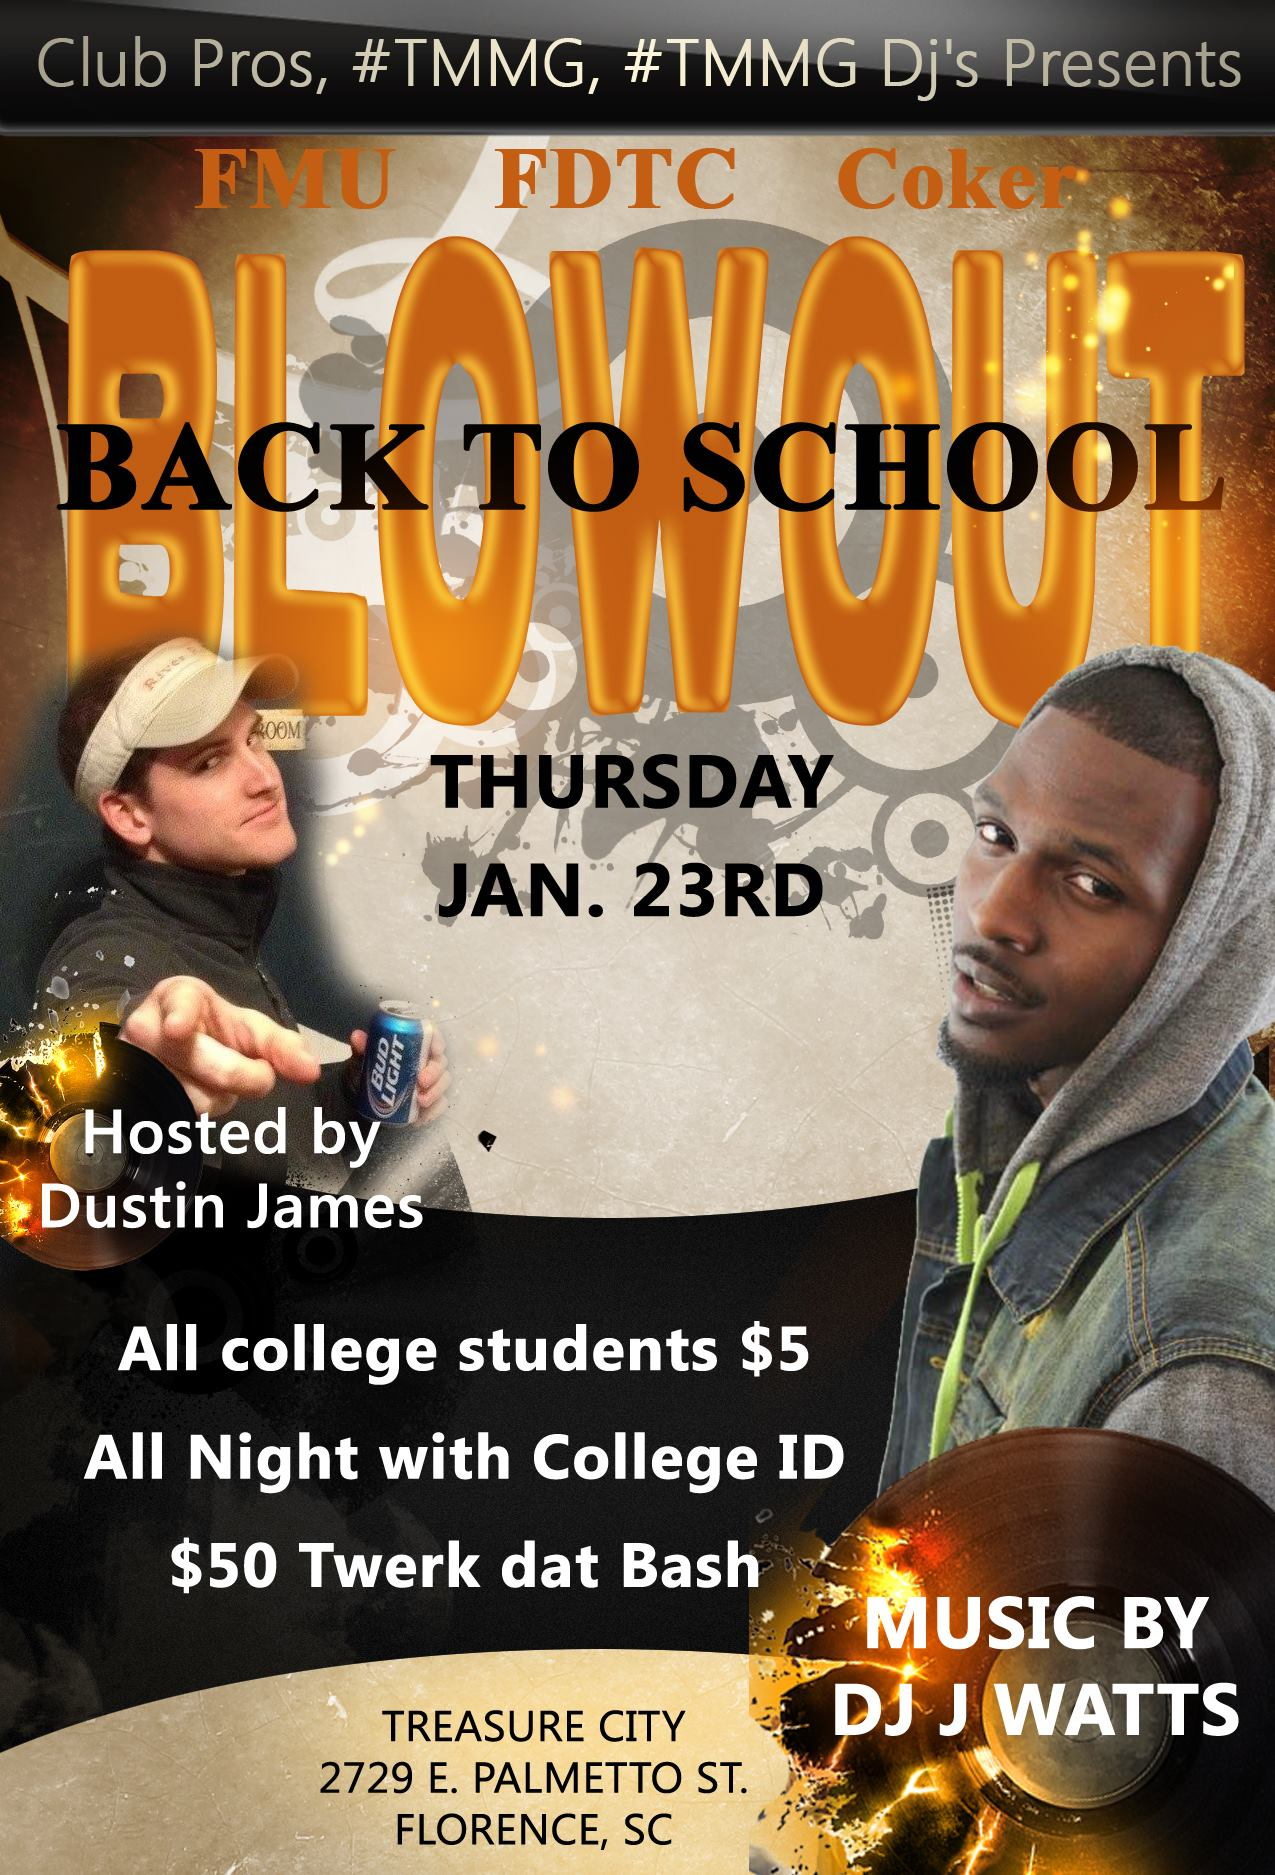 FMU, FDTC, COKER  BACK TO SCHOOL BLOWOUT  THURSDAY JANUARY 23RD Treasure City Florence, SC